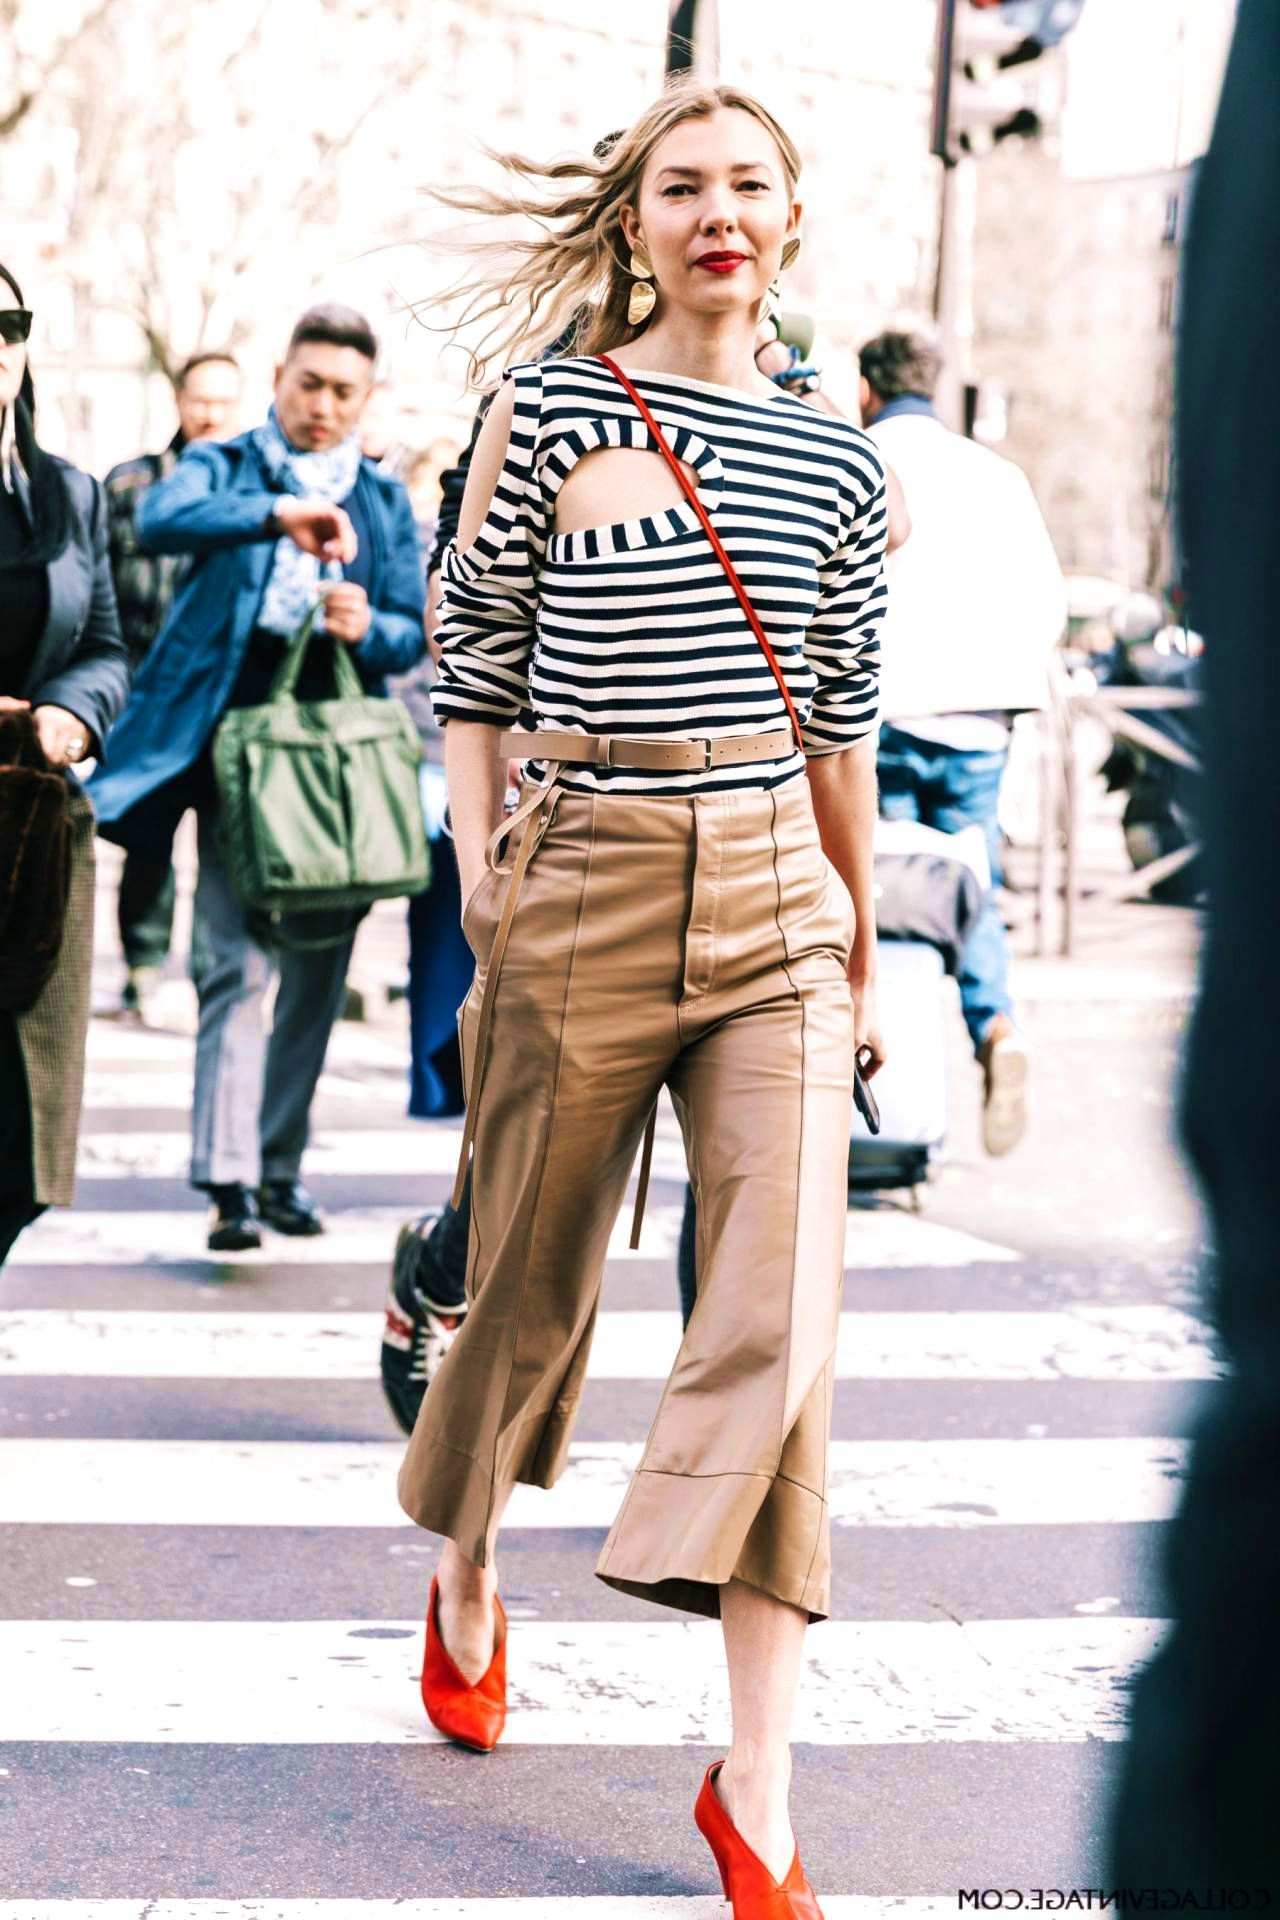 Discussion on this topic: 16 Casual Chic Outfit Ideas for Summer, 16-casual-chic-outfit-ideas-for-summer/